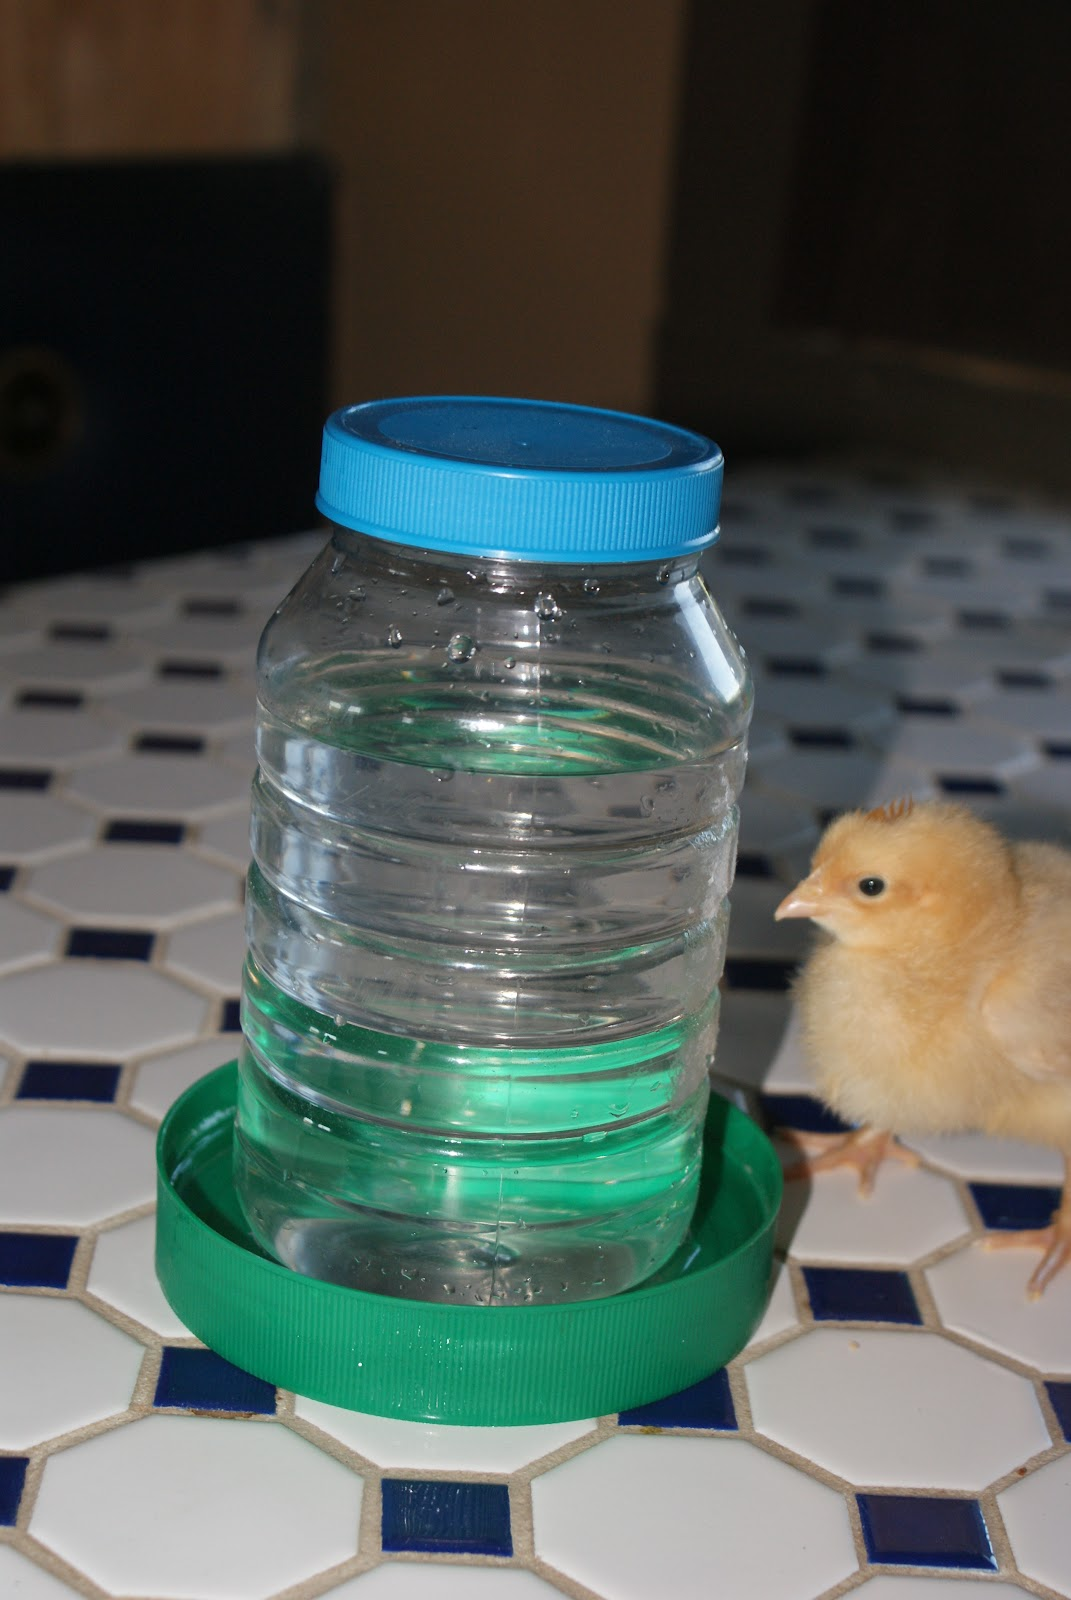 Off The Grid At 30 Frugal Tuesday A Quick Diy Chick Feeder Waterer